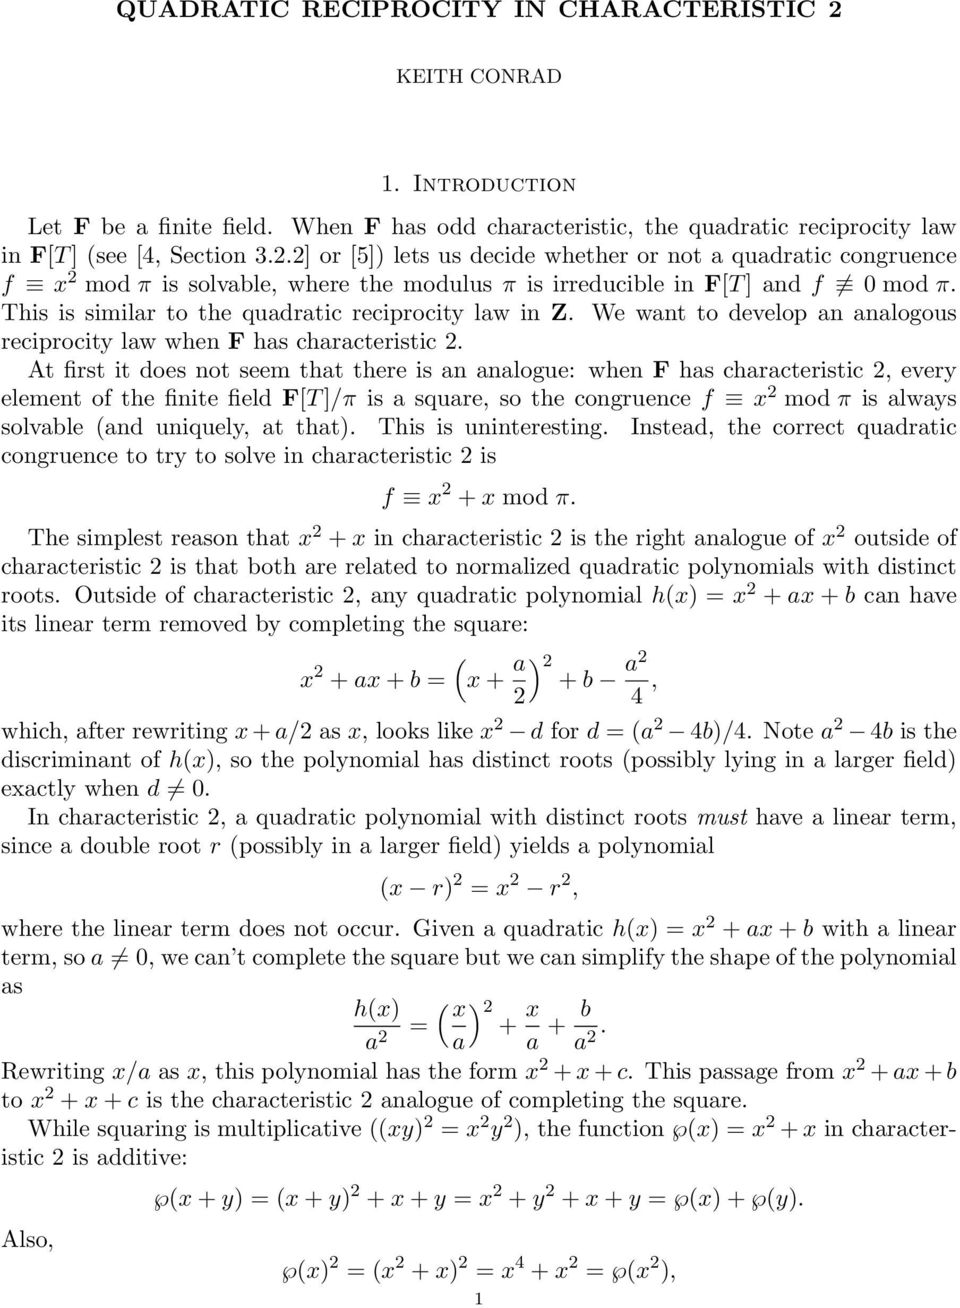 At first it does not seem that there is an analogue: when F has characteristic 2, every element of the finite field F[T ]/π is a square, so the congruence f x 2 mod π is always solvable (and